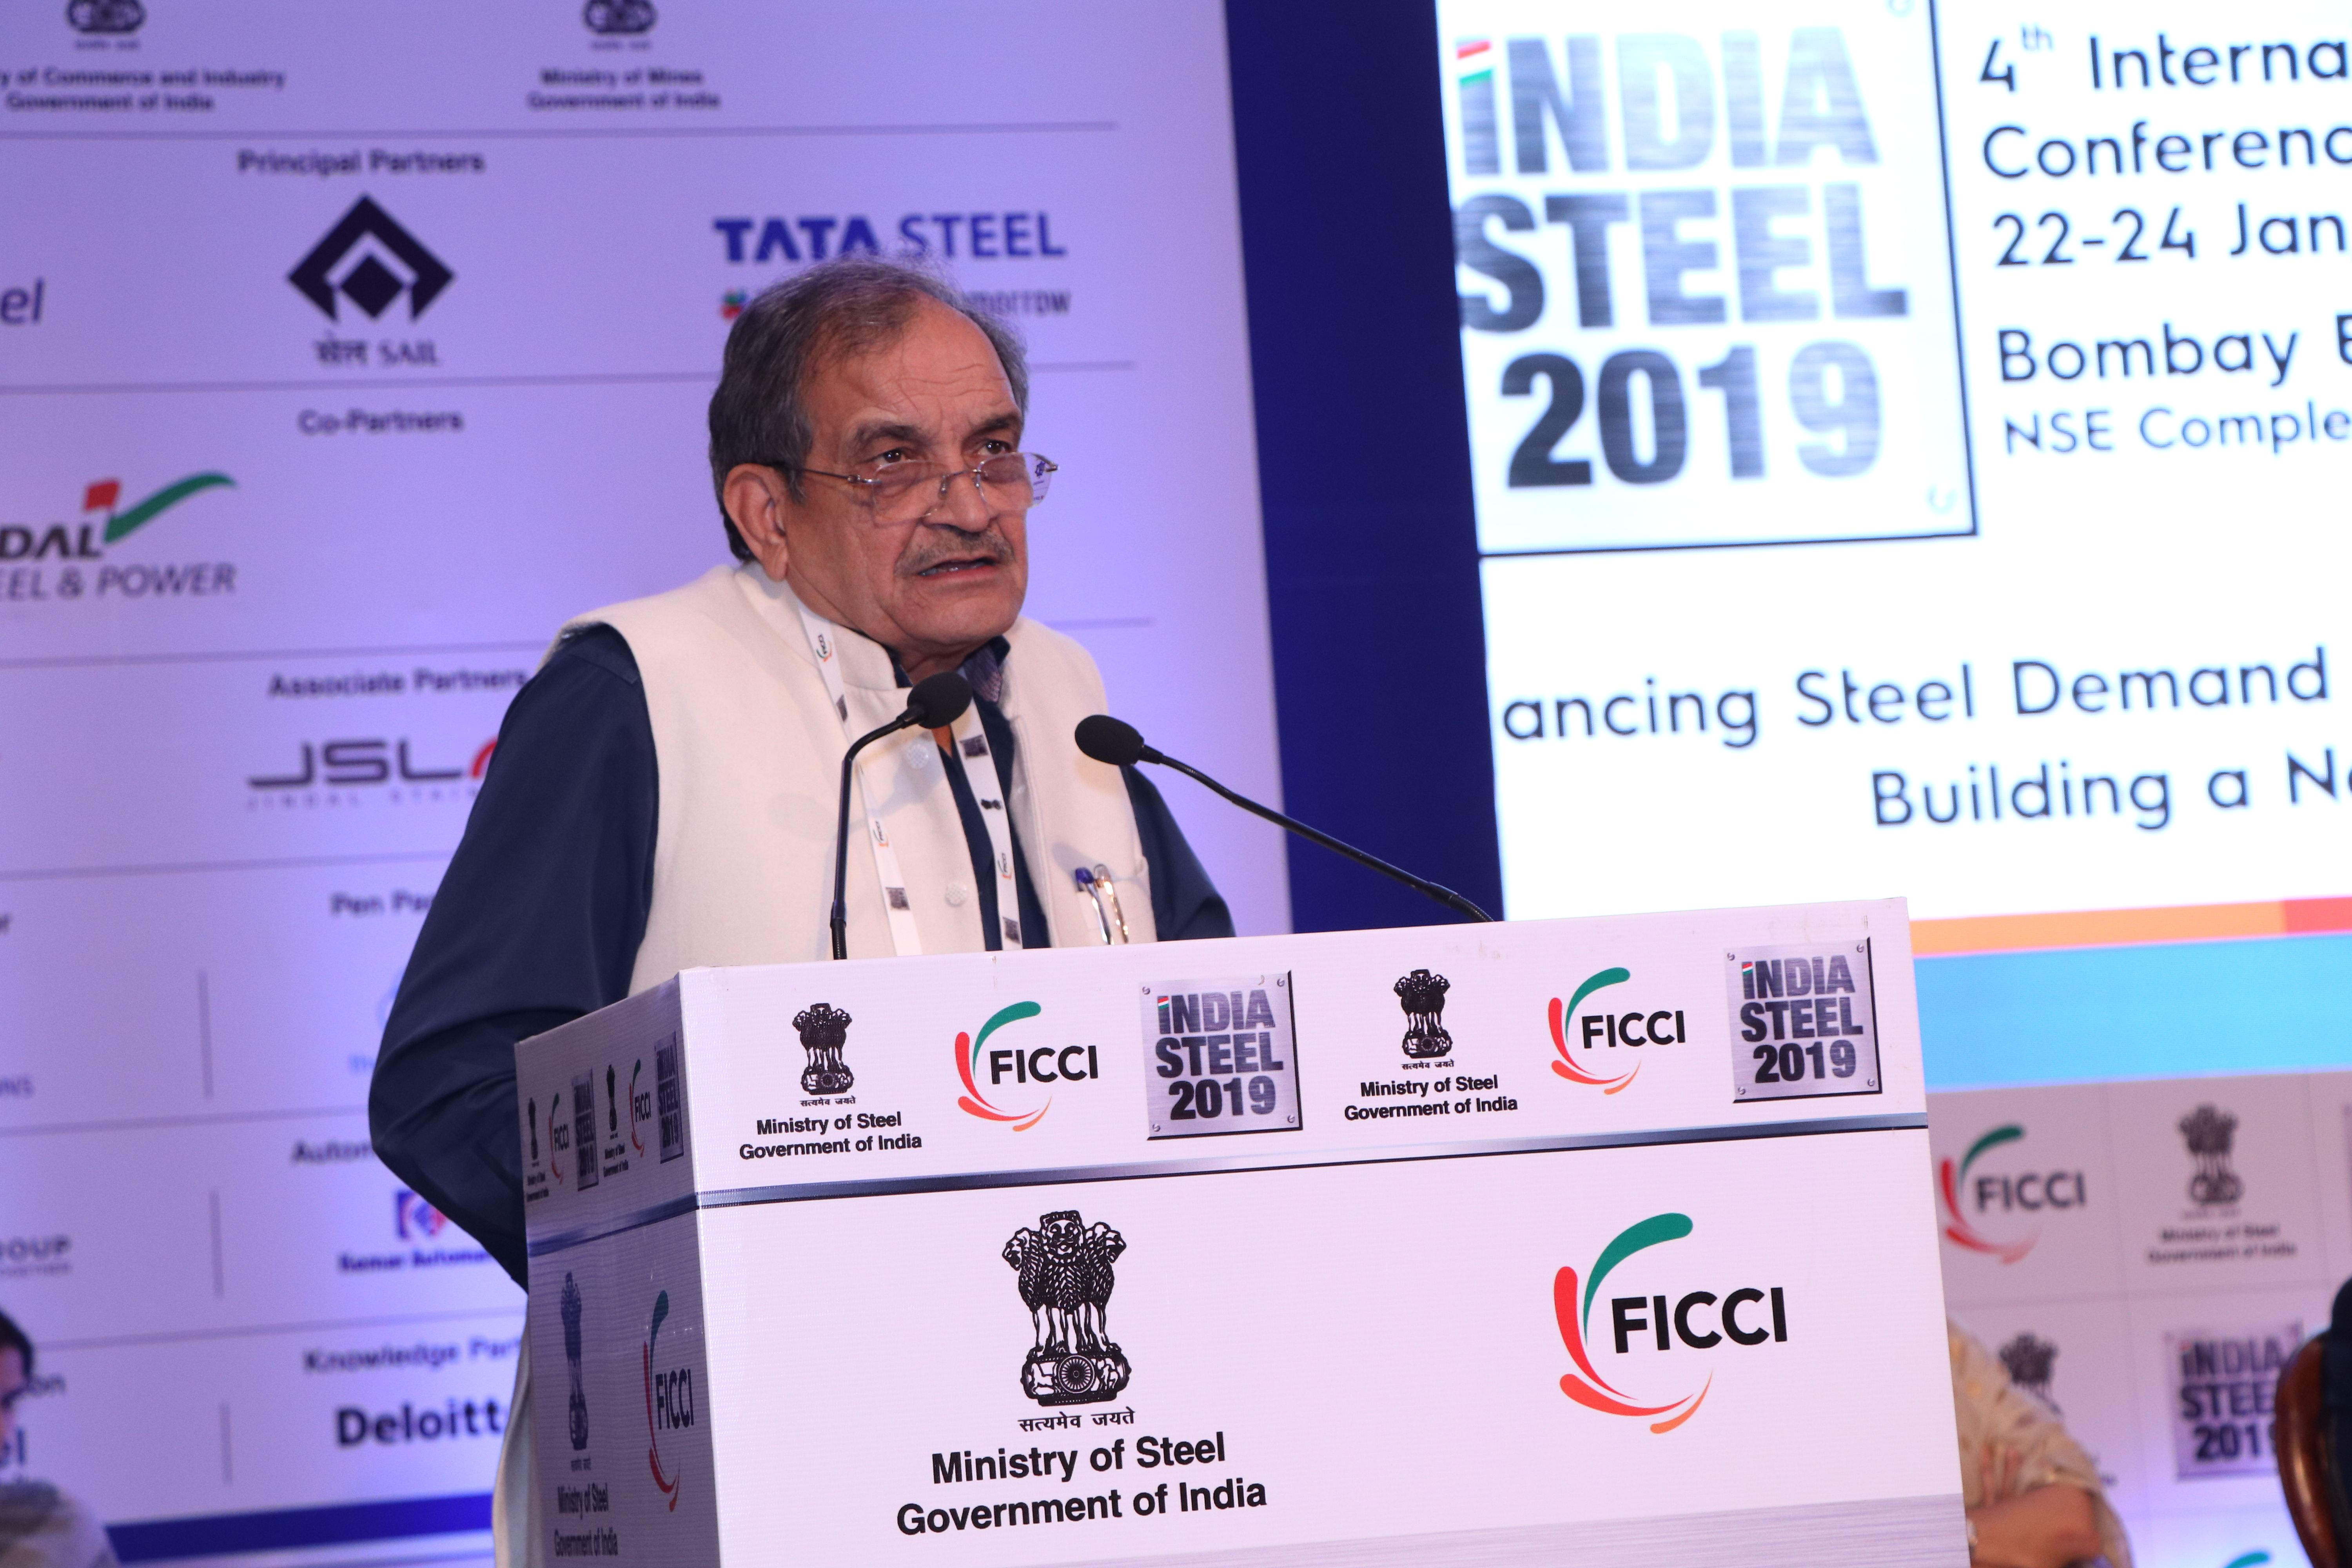 Hon'ble Minister of Steel Chaudhary Birender Singh at FICCI's 4th International Exhibition and Conference - 'INDIA STEEL 2019